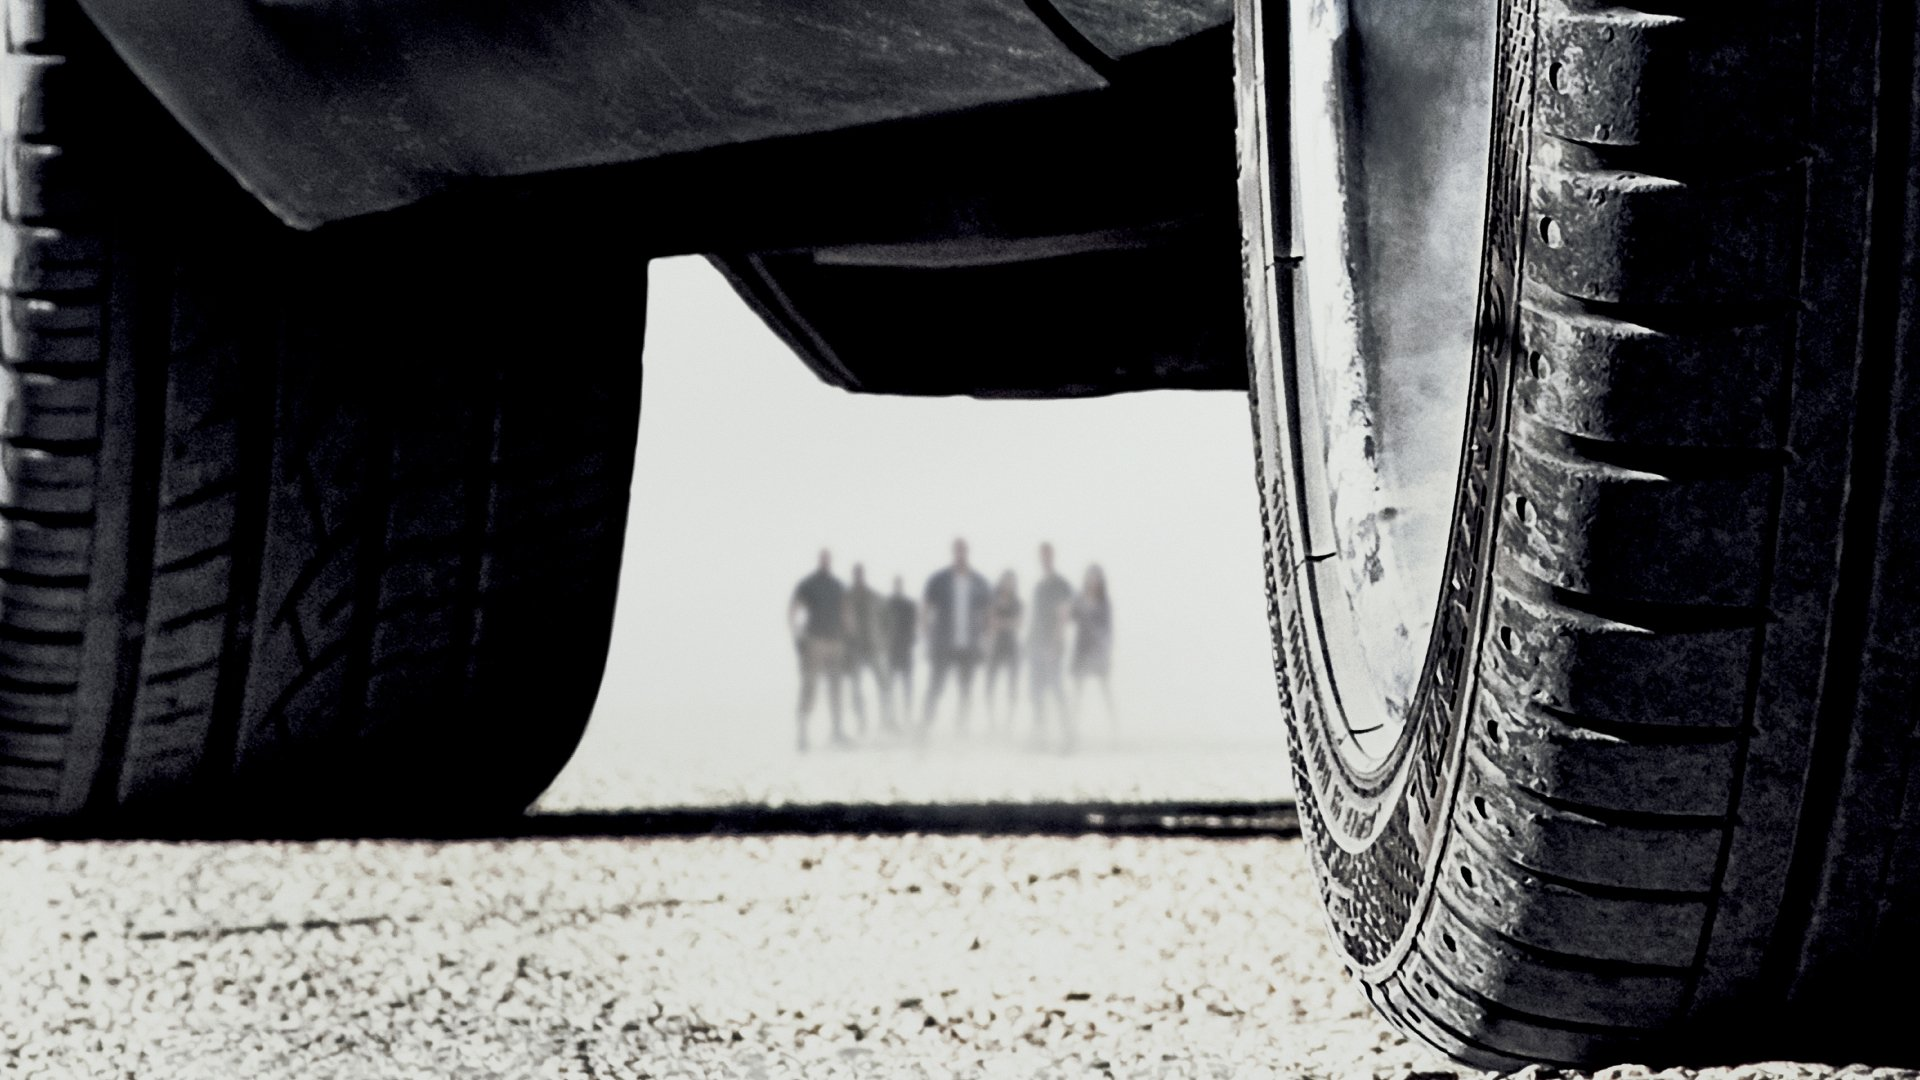 76 Furious 7 HD Wallpapers